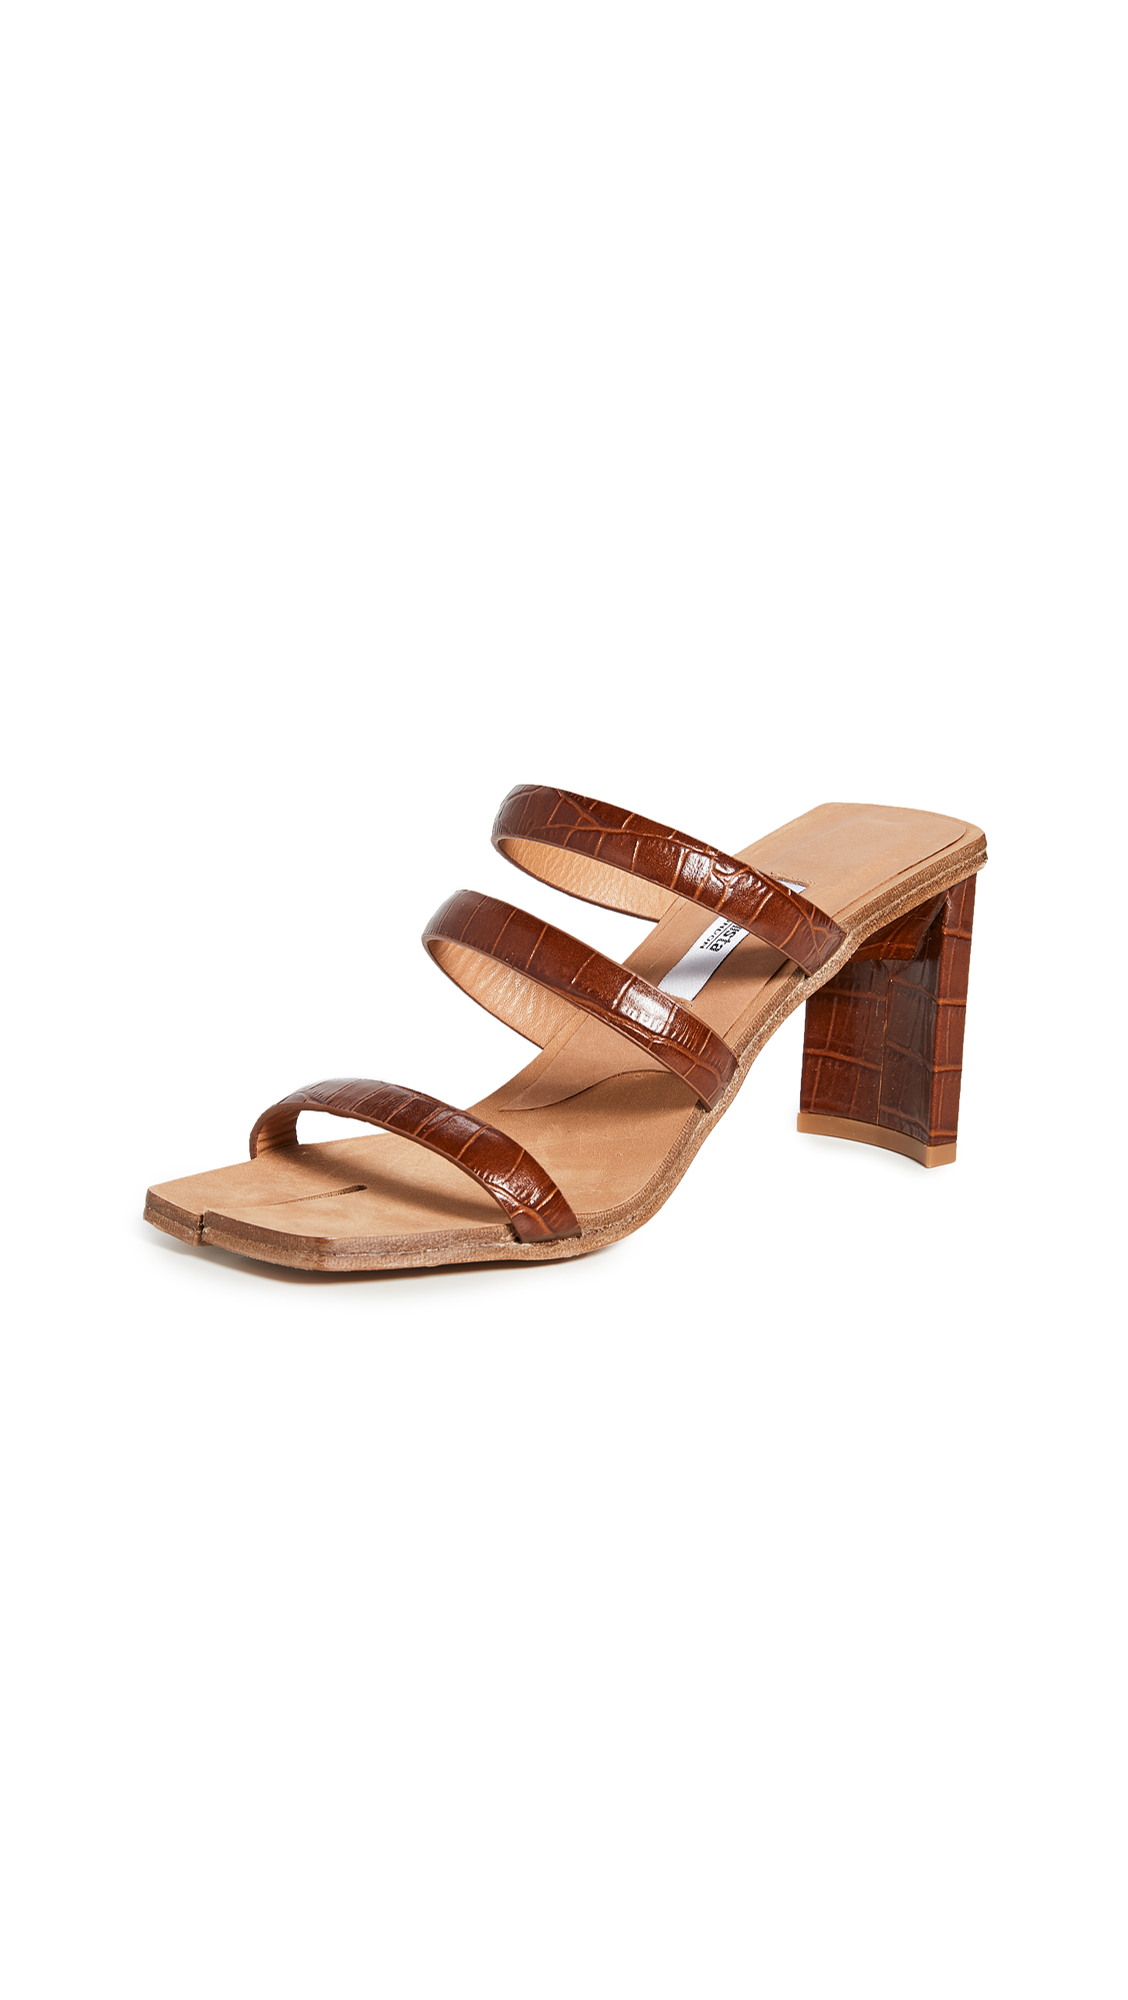 Miista Joanne Clay Croc Sandals - 50% Off Sale